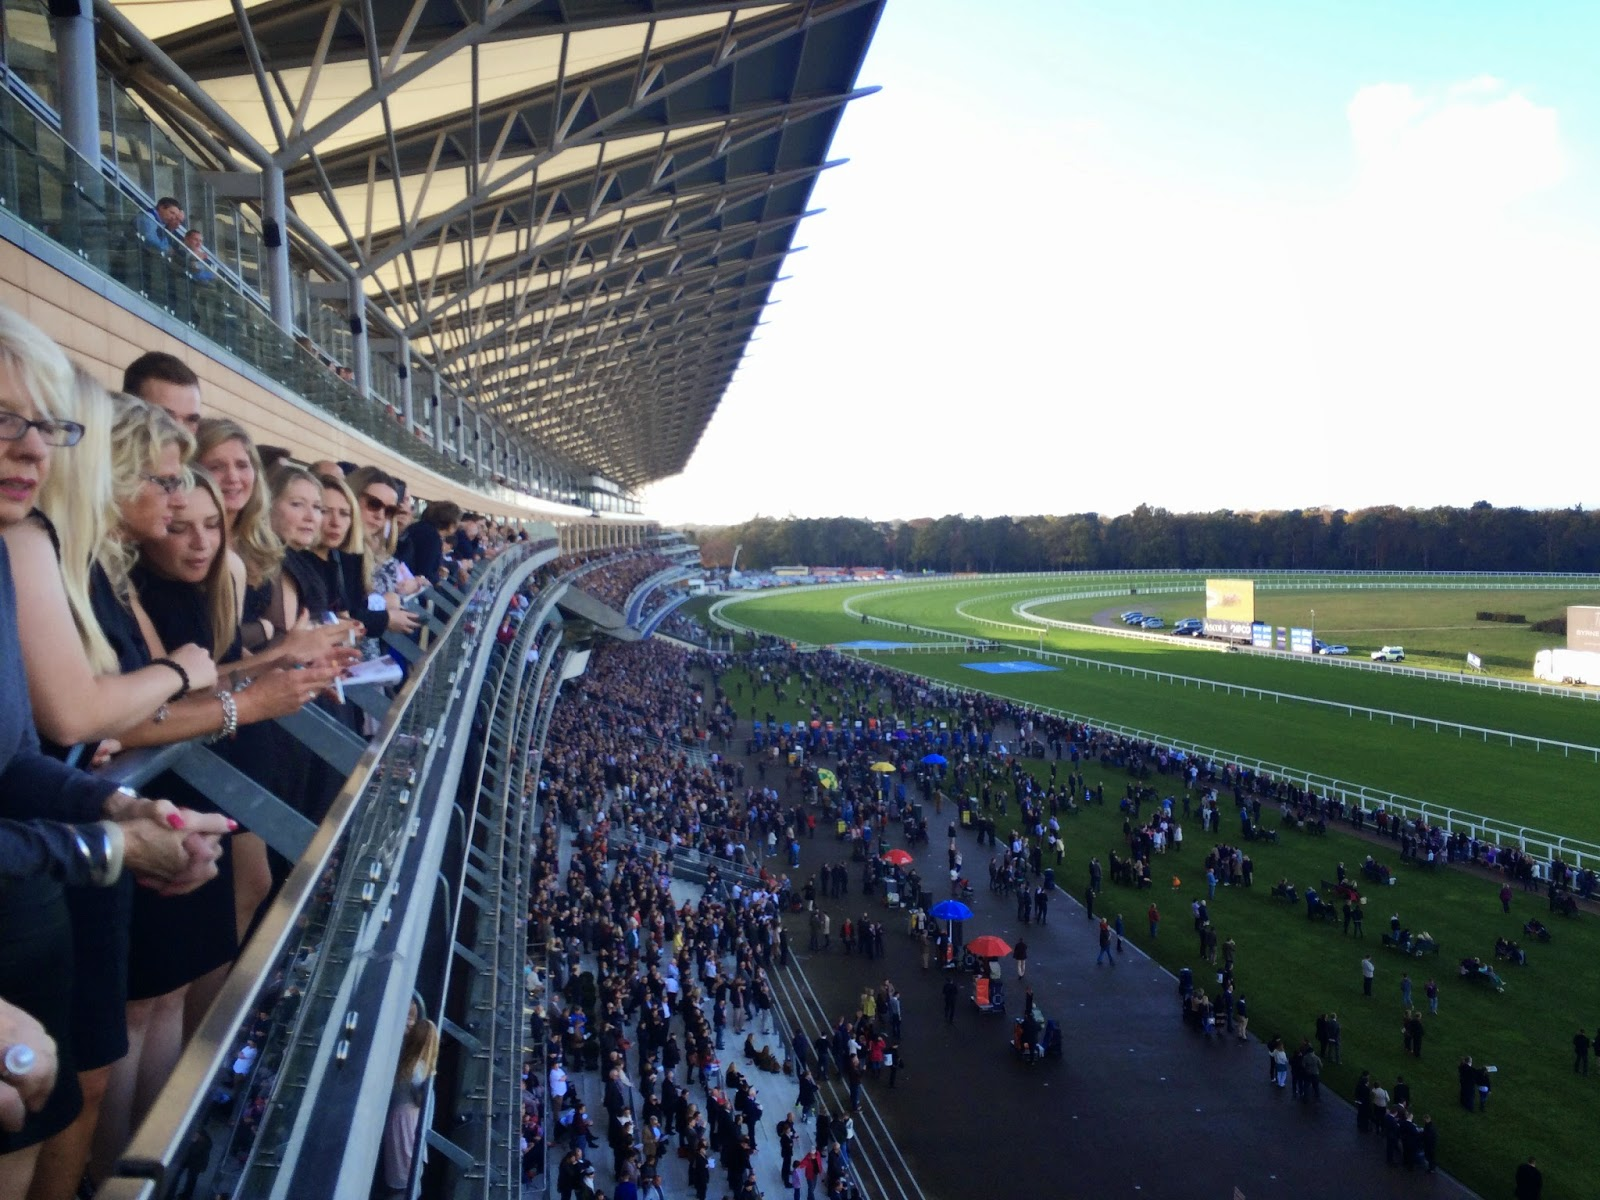 View of Ascot racecourse from outside the On5 restaurant